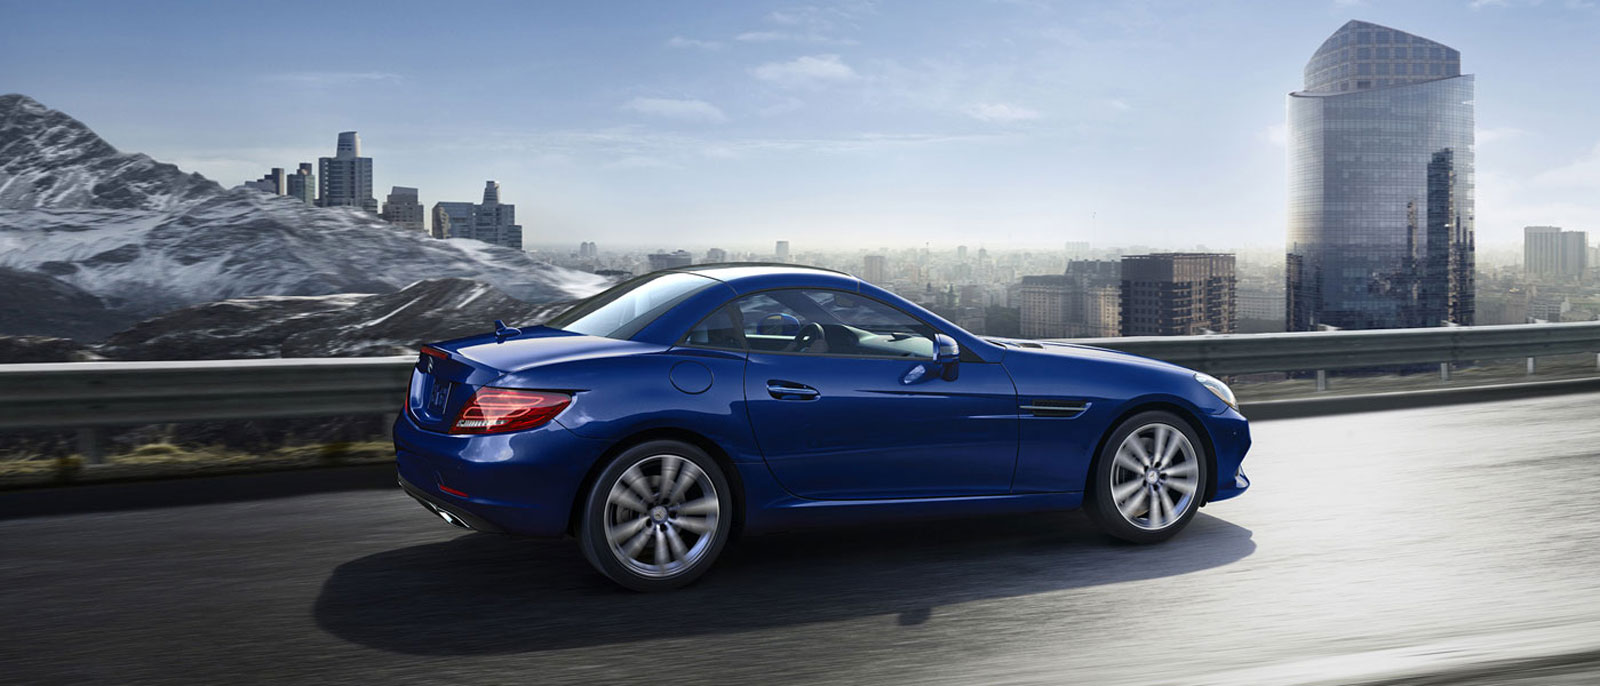 Experience the new 2017 mercedes benz slc300 roadster for Mercedes benz of south atlanta service coupons